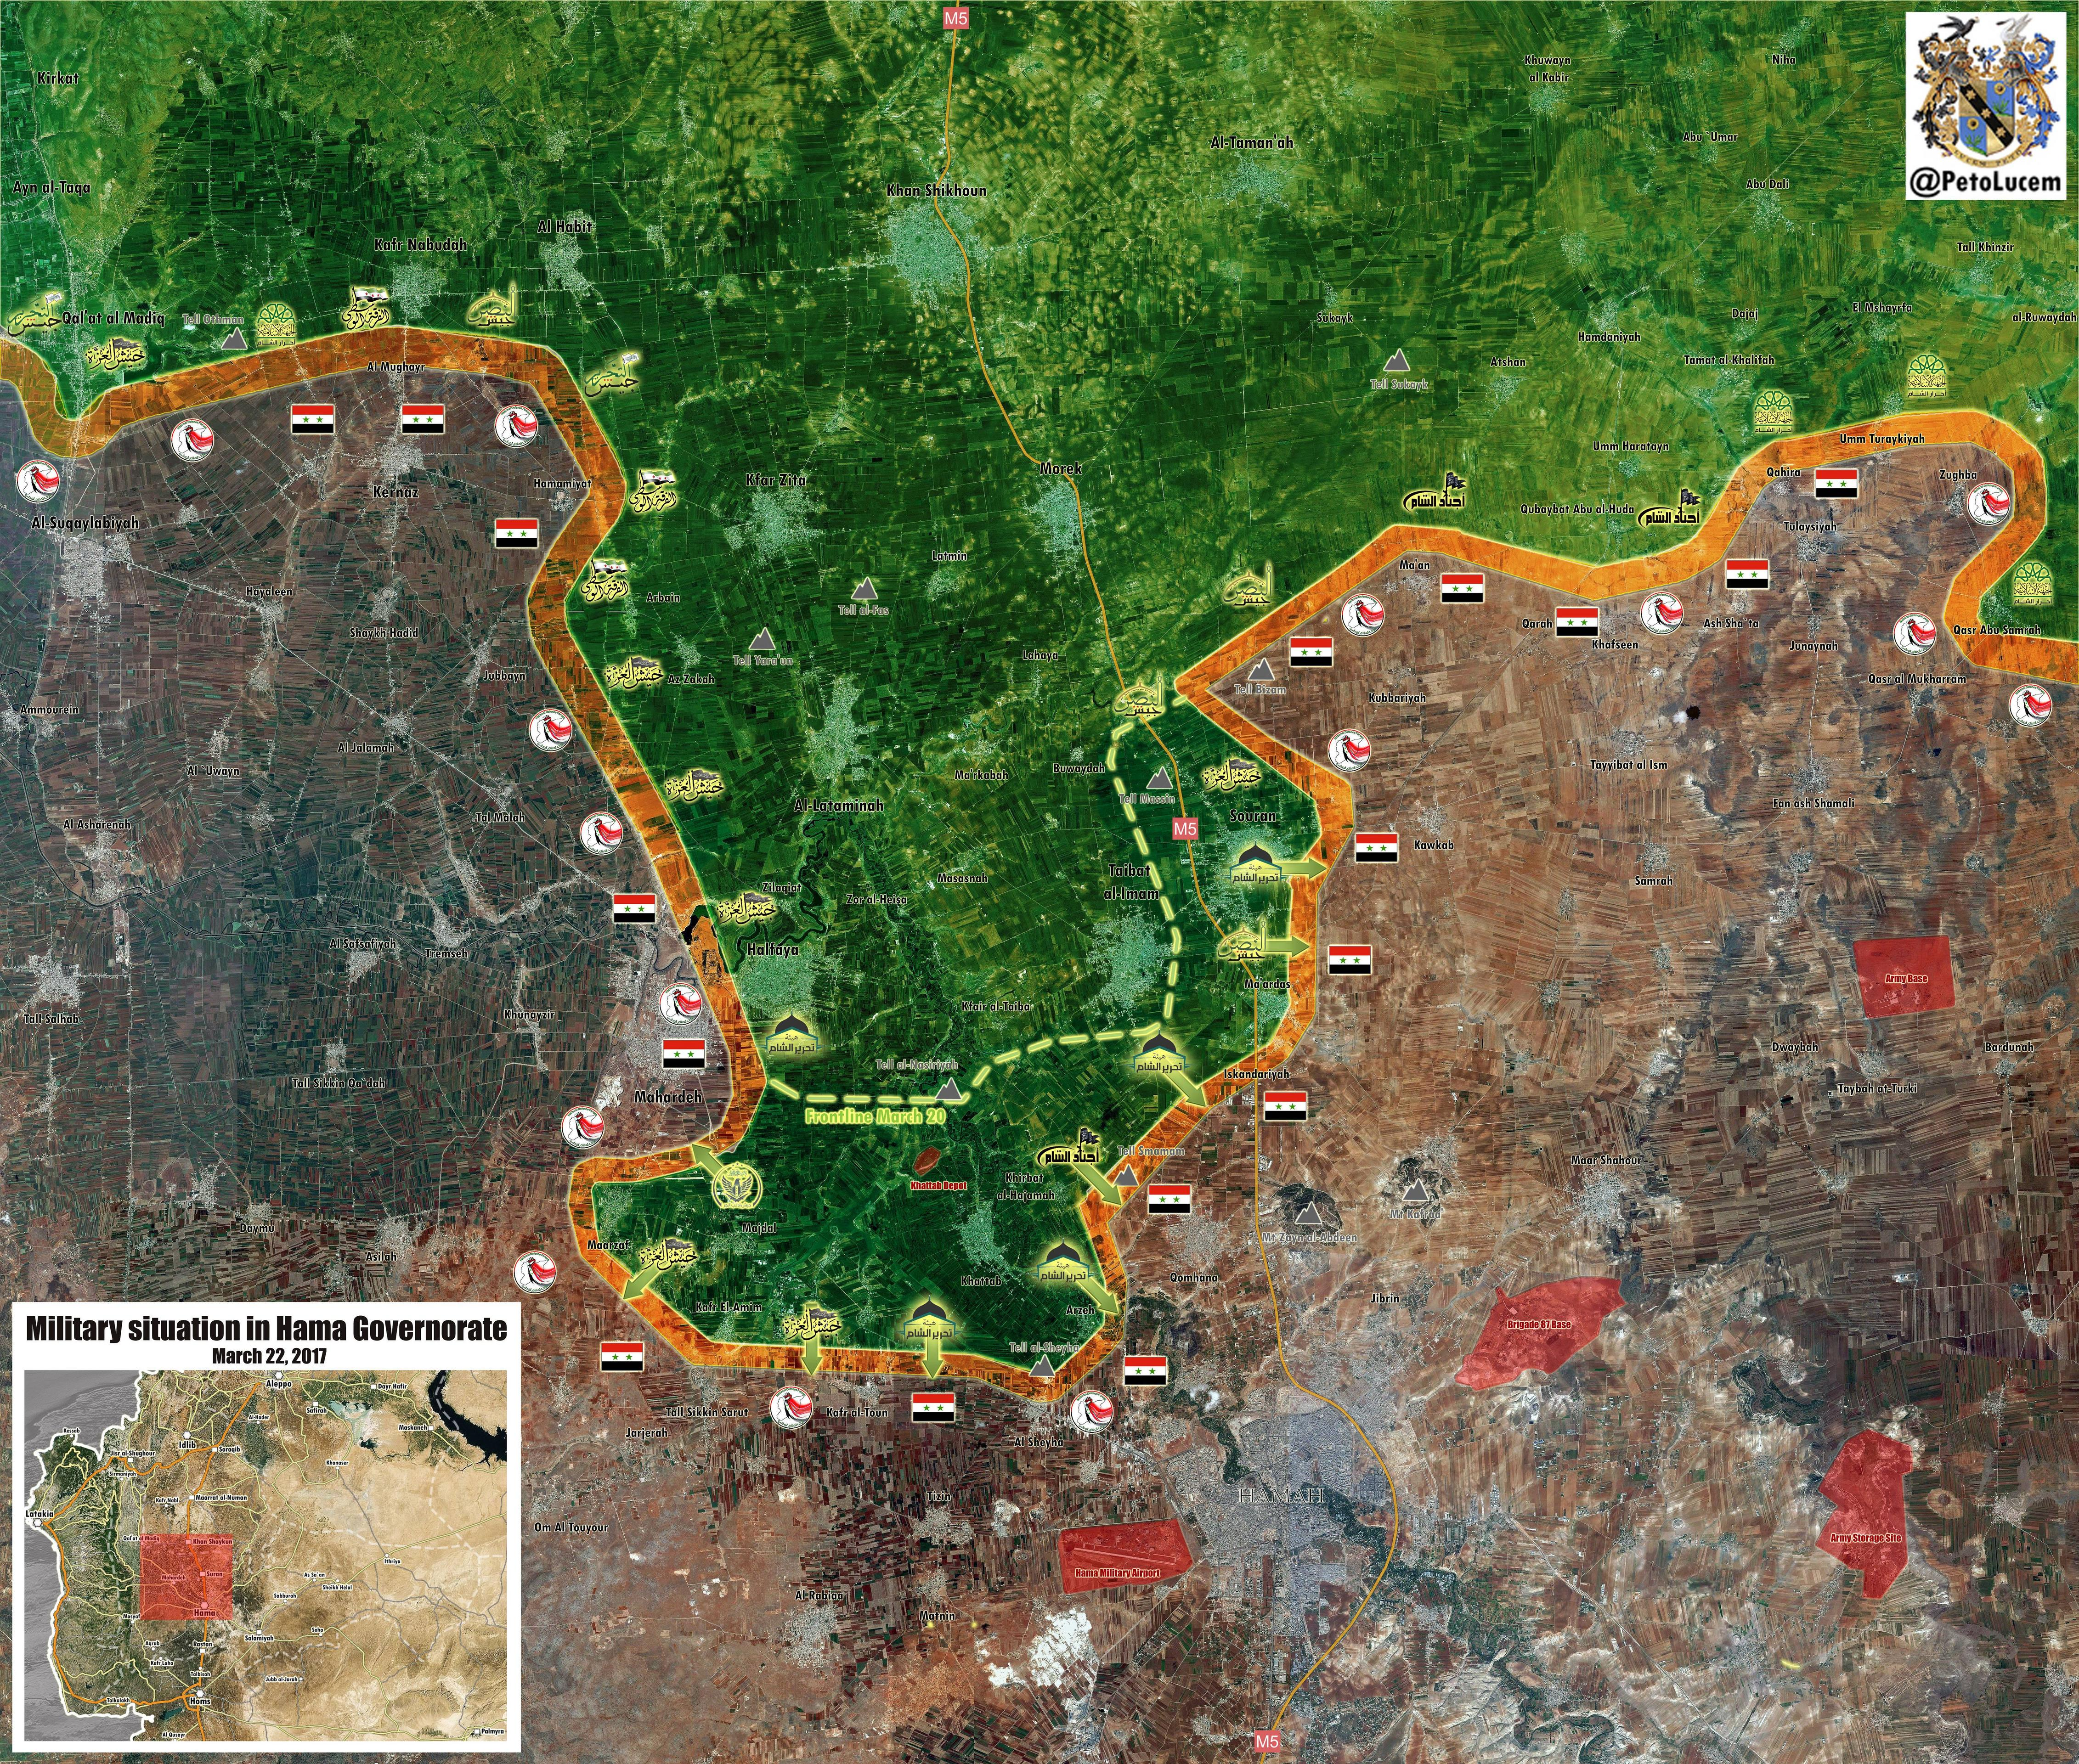 Syrian Military Sends Large Reinforcements To Combat Al-Qaeda-Linked Militants In Hama